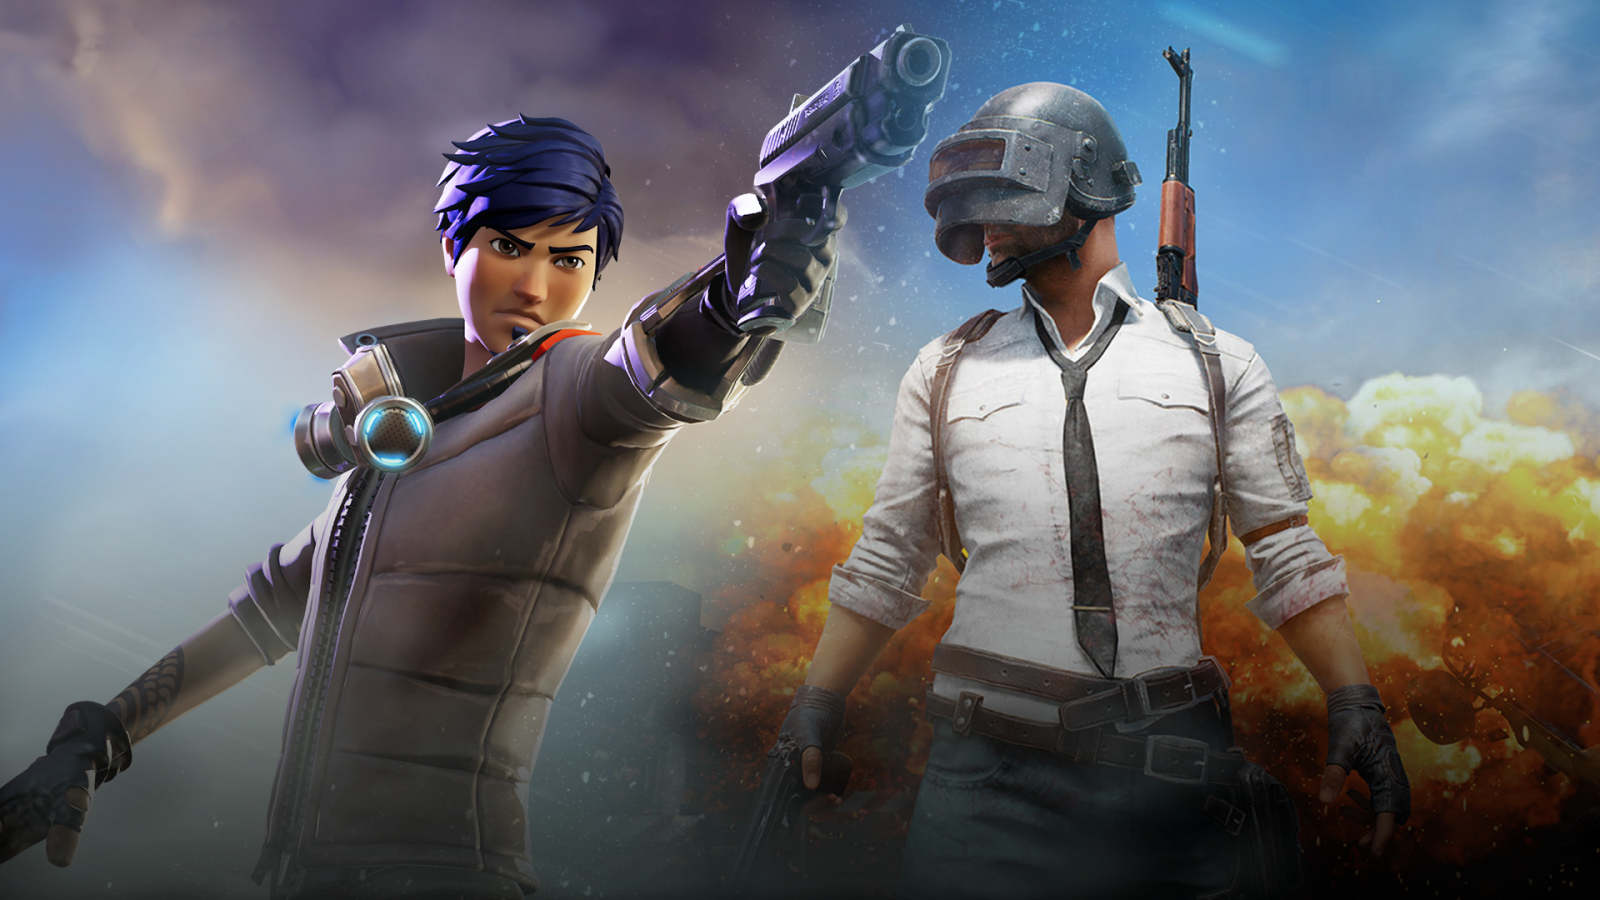 fortnite-vs.-pubg:-player-count,-map,-weapons-–-which-is-better?